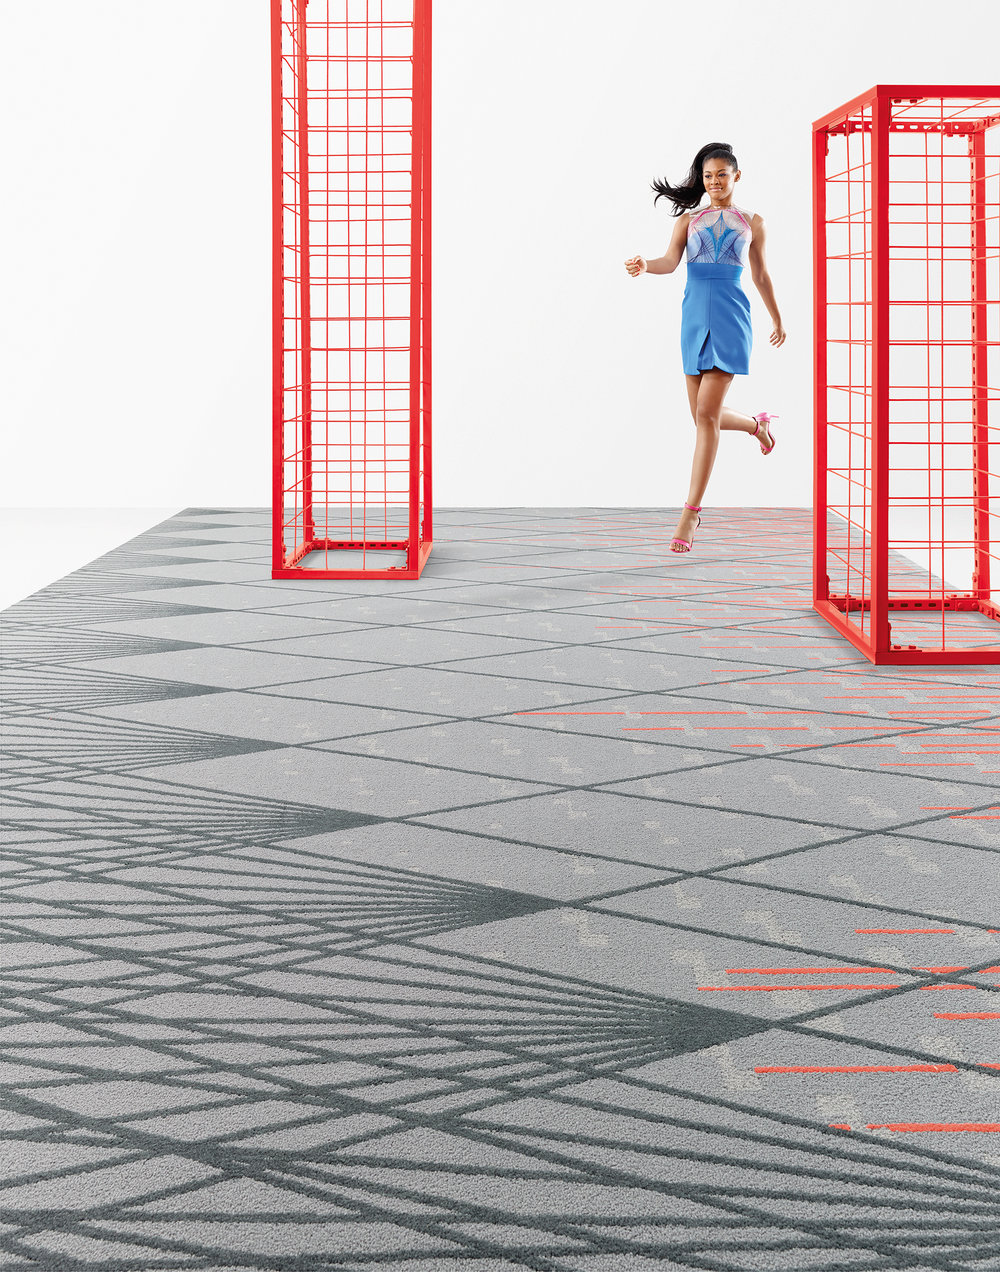 Escalate_Rug_Feature_1_with_model_c.jpg